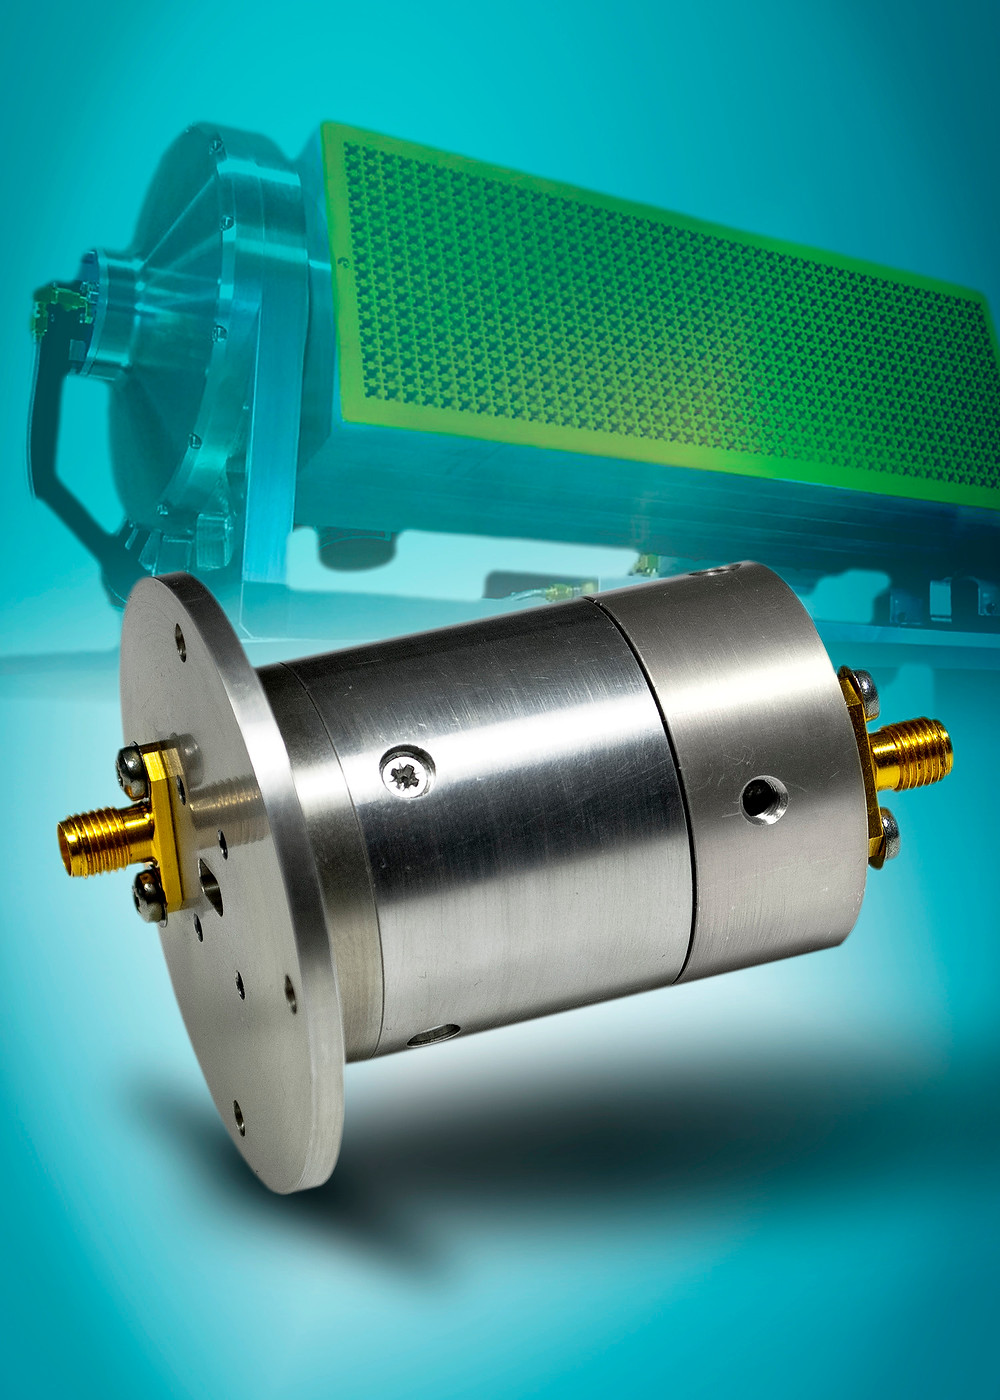 Link Microtek microwave rotary joint is key element of new Ka-band satcom-on-the-move antenna system from ADS International